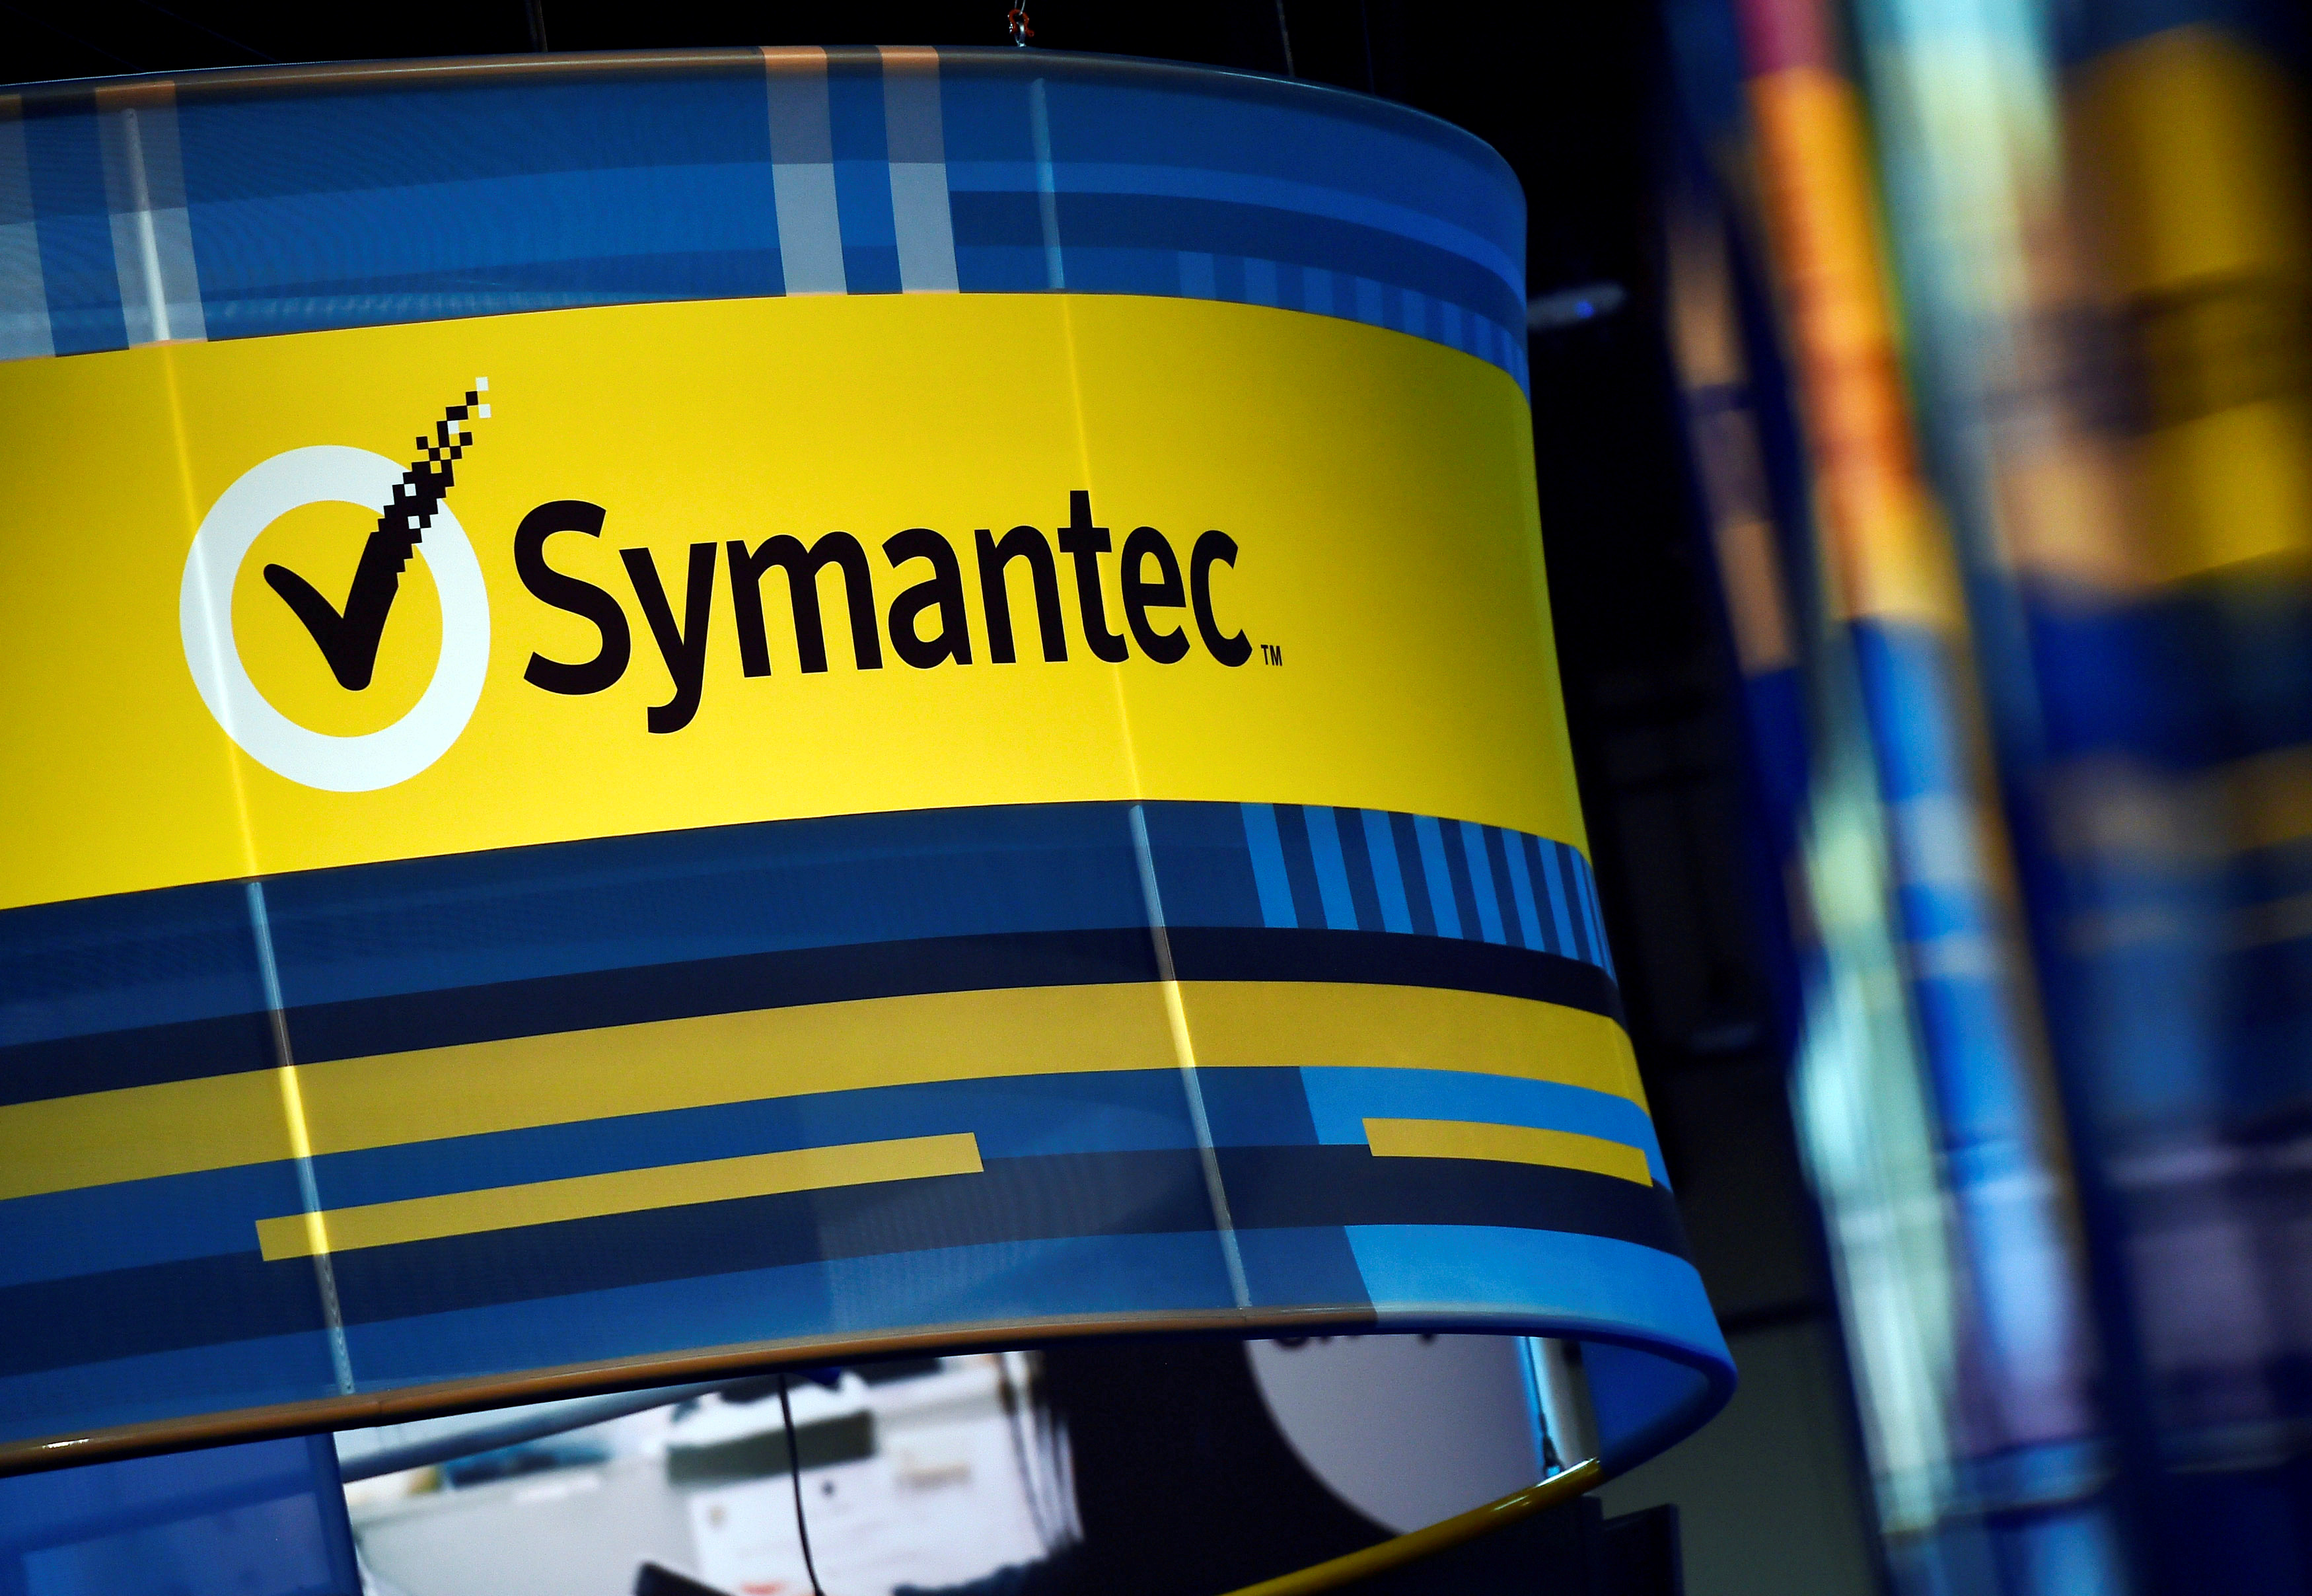 Symantec LBO offers more potential than threat – Breakingviews